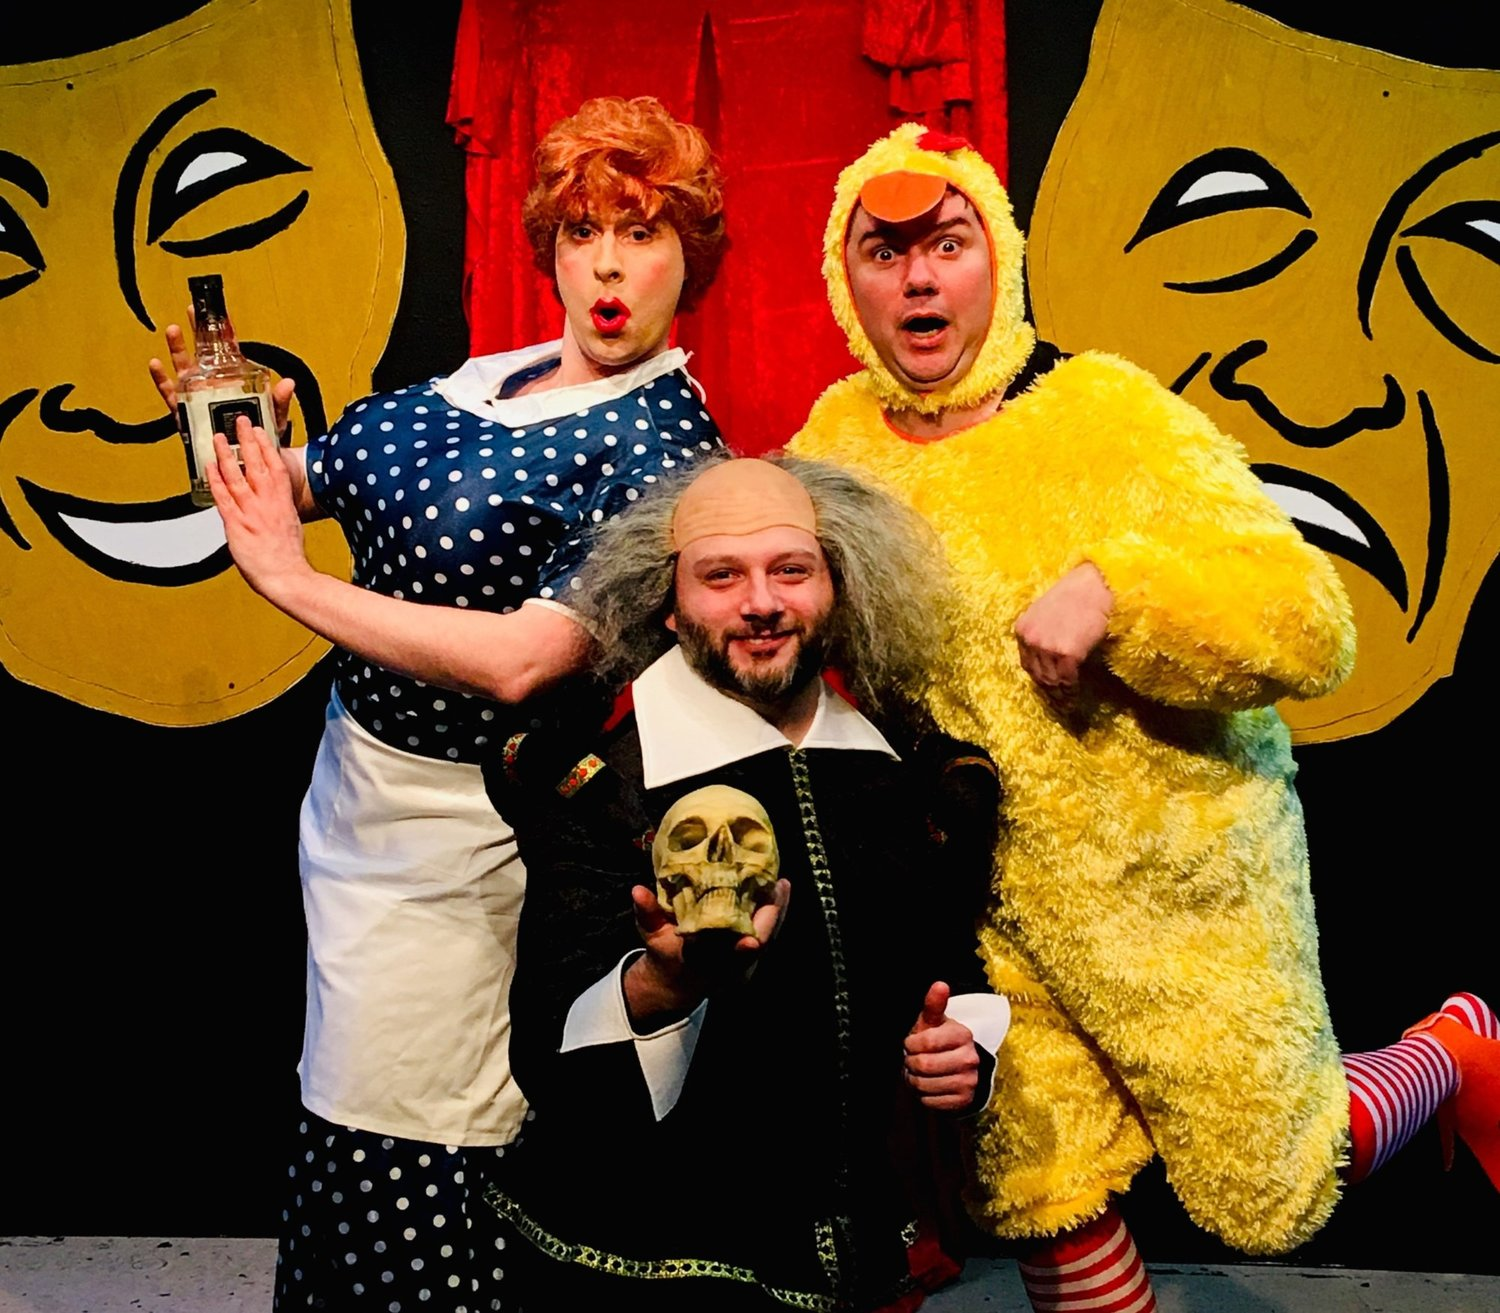 BWW Review: THE COMPLETE HISTORY OF COMEDY (ABRIDGED) at Connecticut Cabaret Theatre